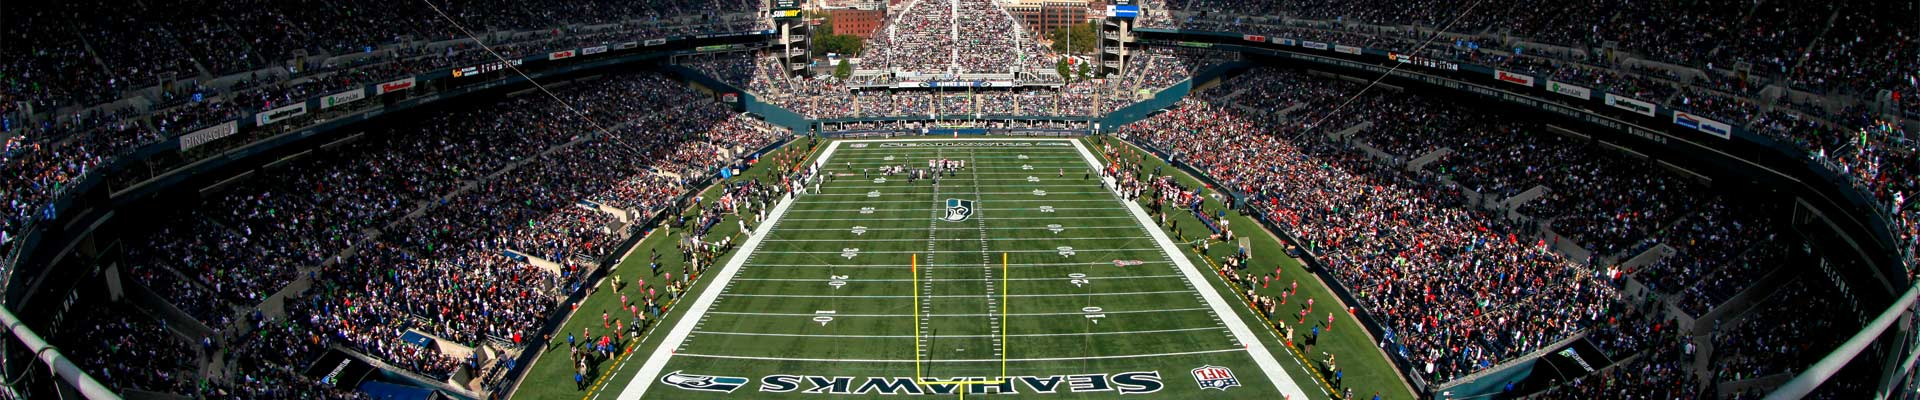 Seattle Seahawks Travel and Vacation Packages